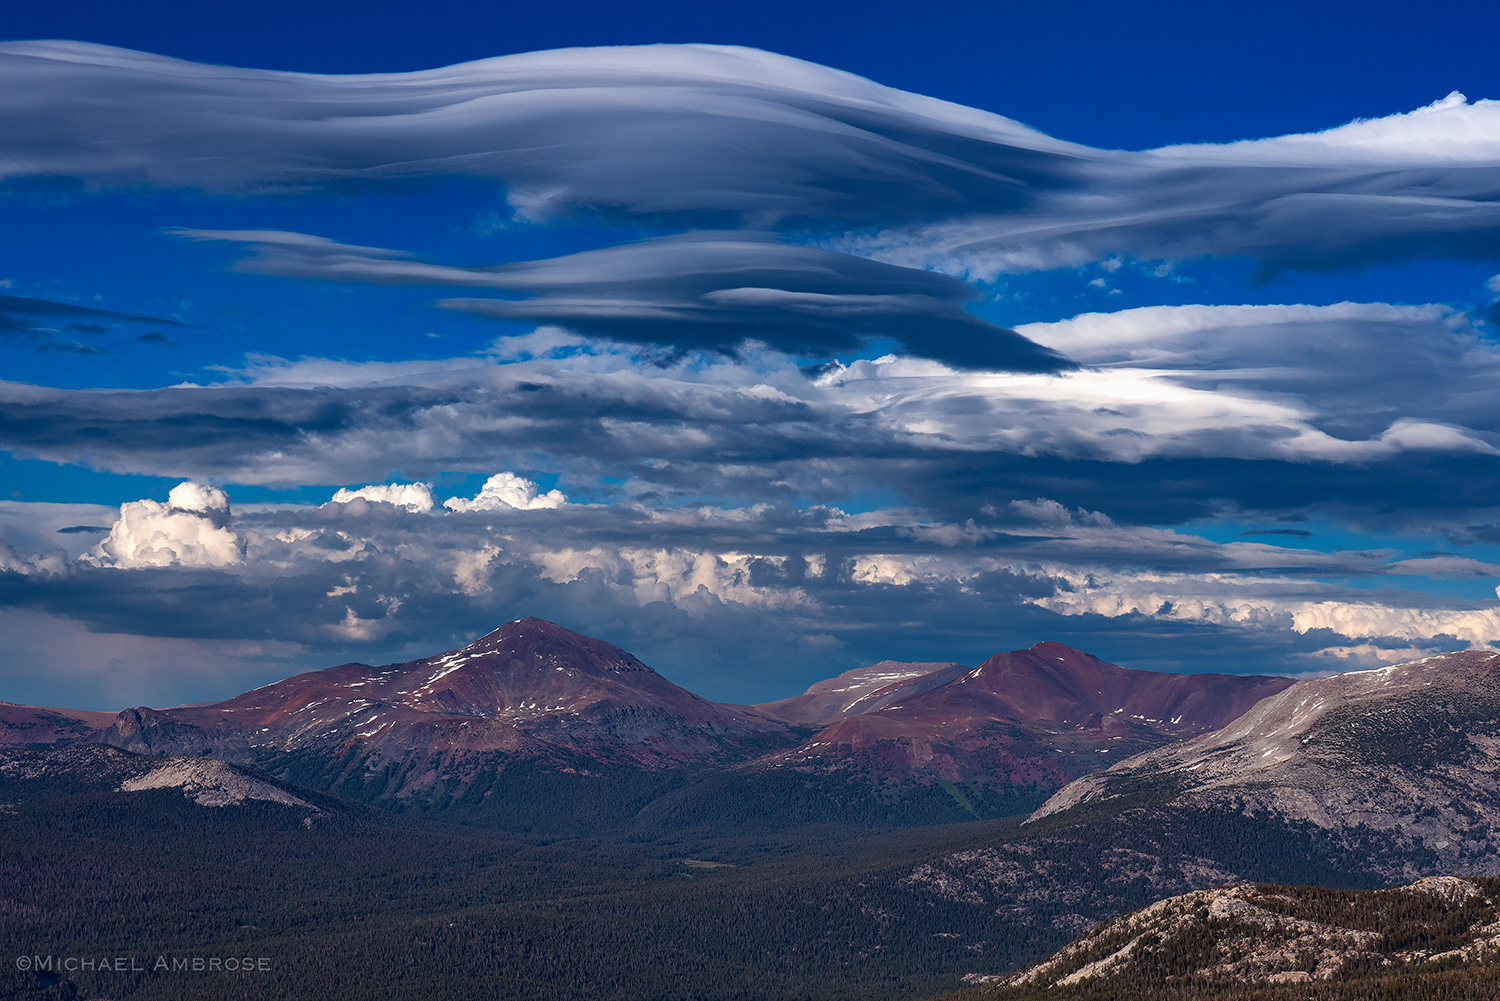 Lenticular clouds hover over the Dana Crest, in Yosemite National Park, as viewed from Upper Cathedral Peak.